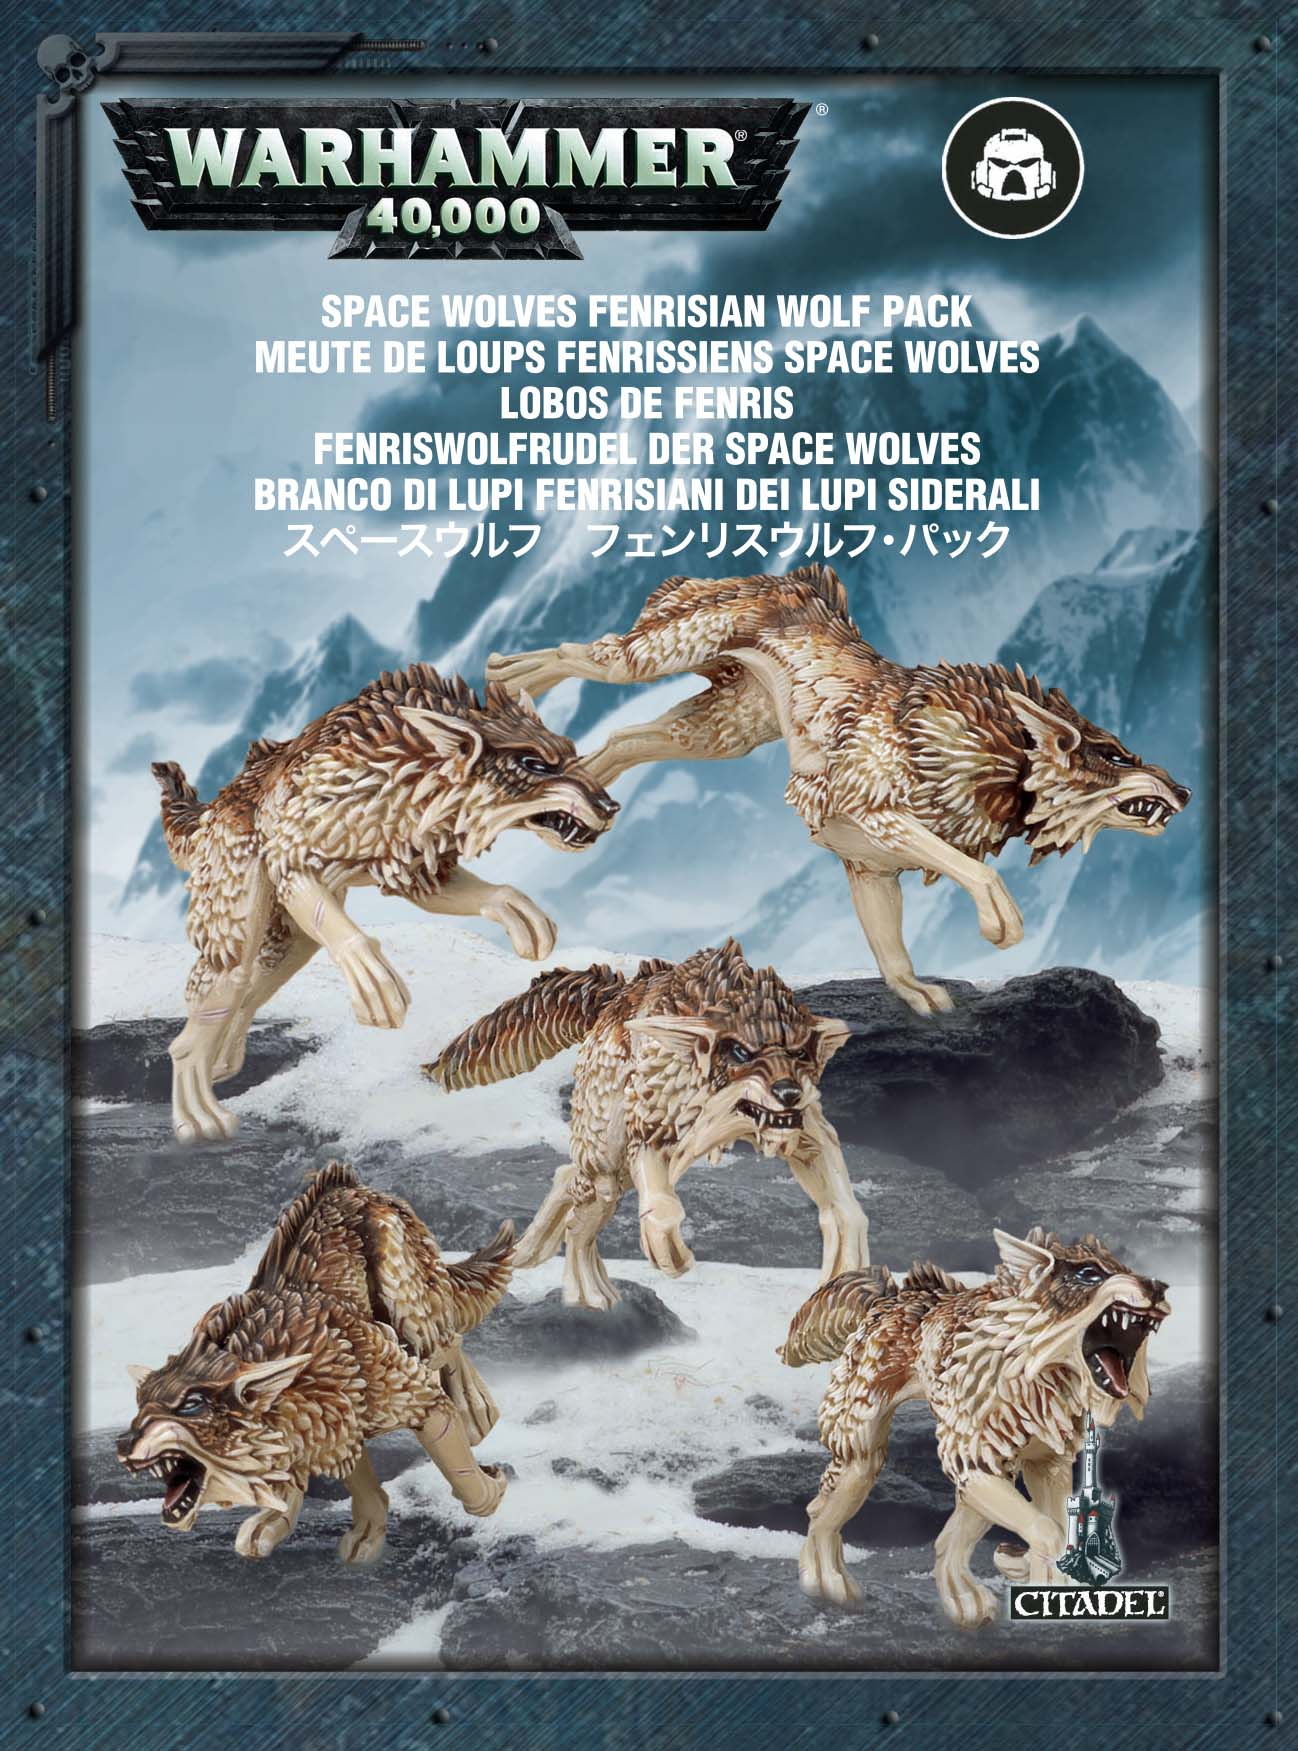 Warhammer 40,000: Space Wolves: Fenrisian Wolf Pack